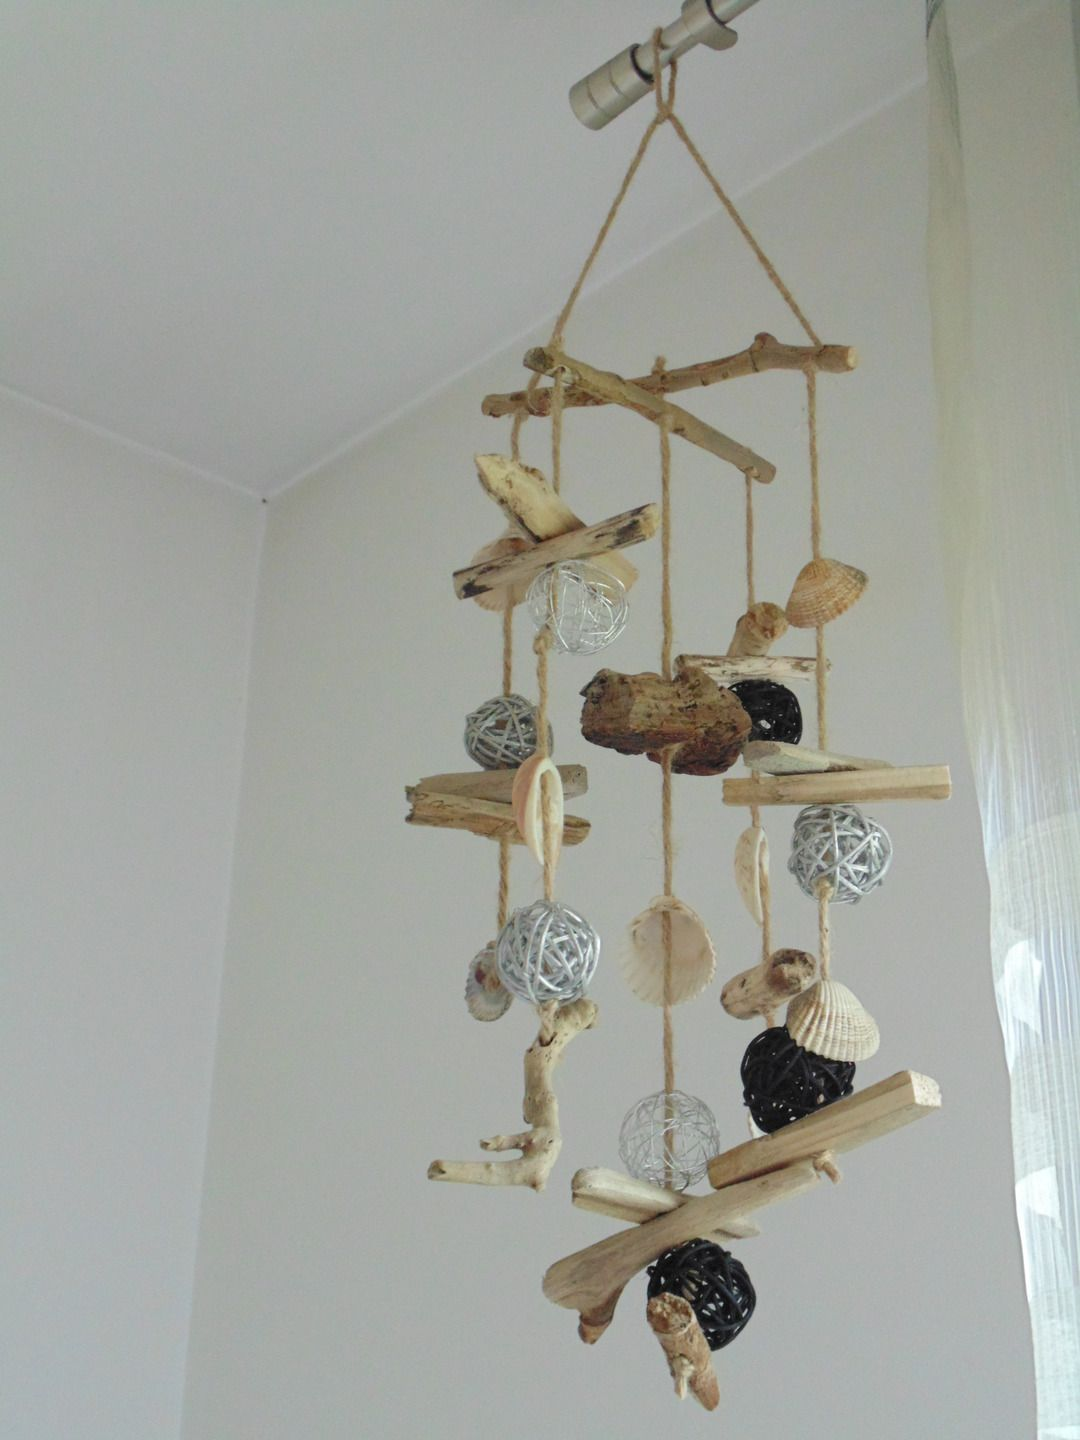 Mobile suspension d co en bois flott coquillages et for Realisation objet en bois flotte